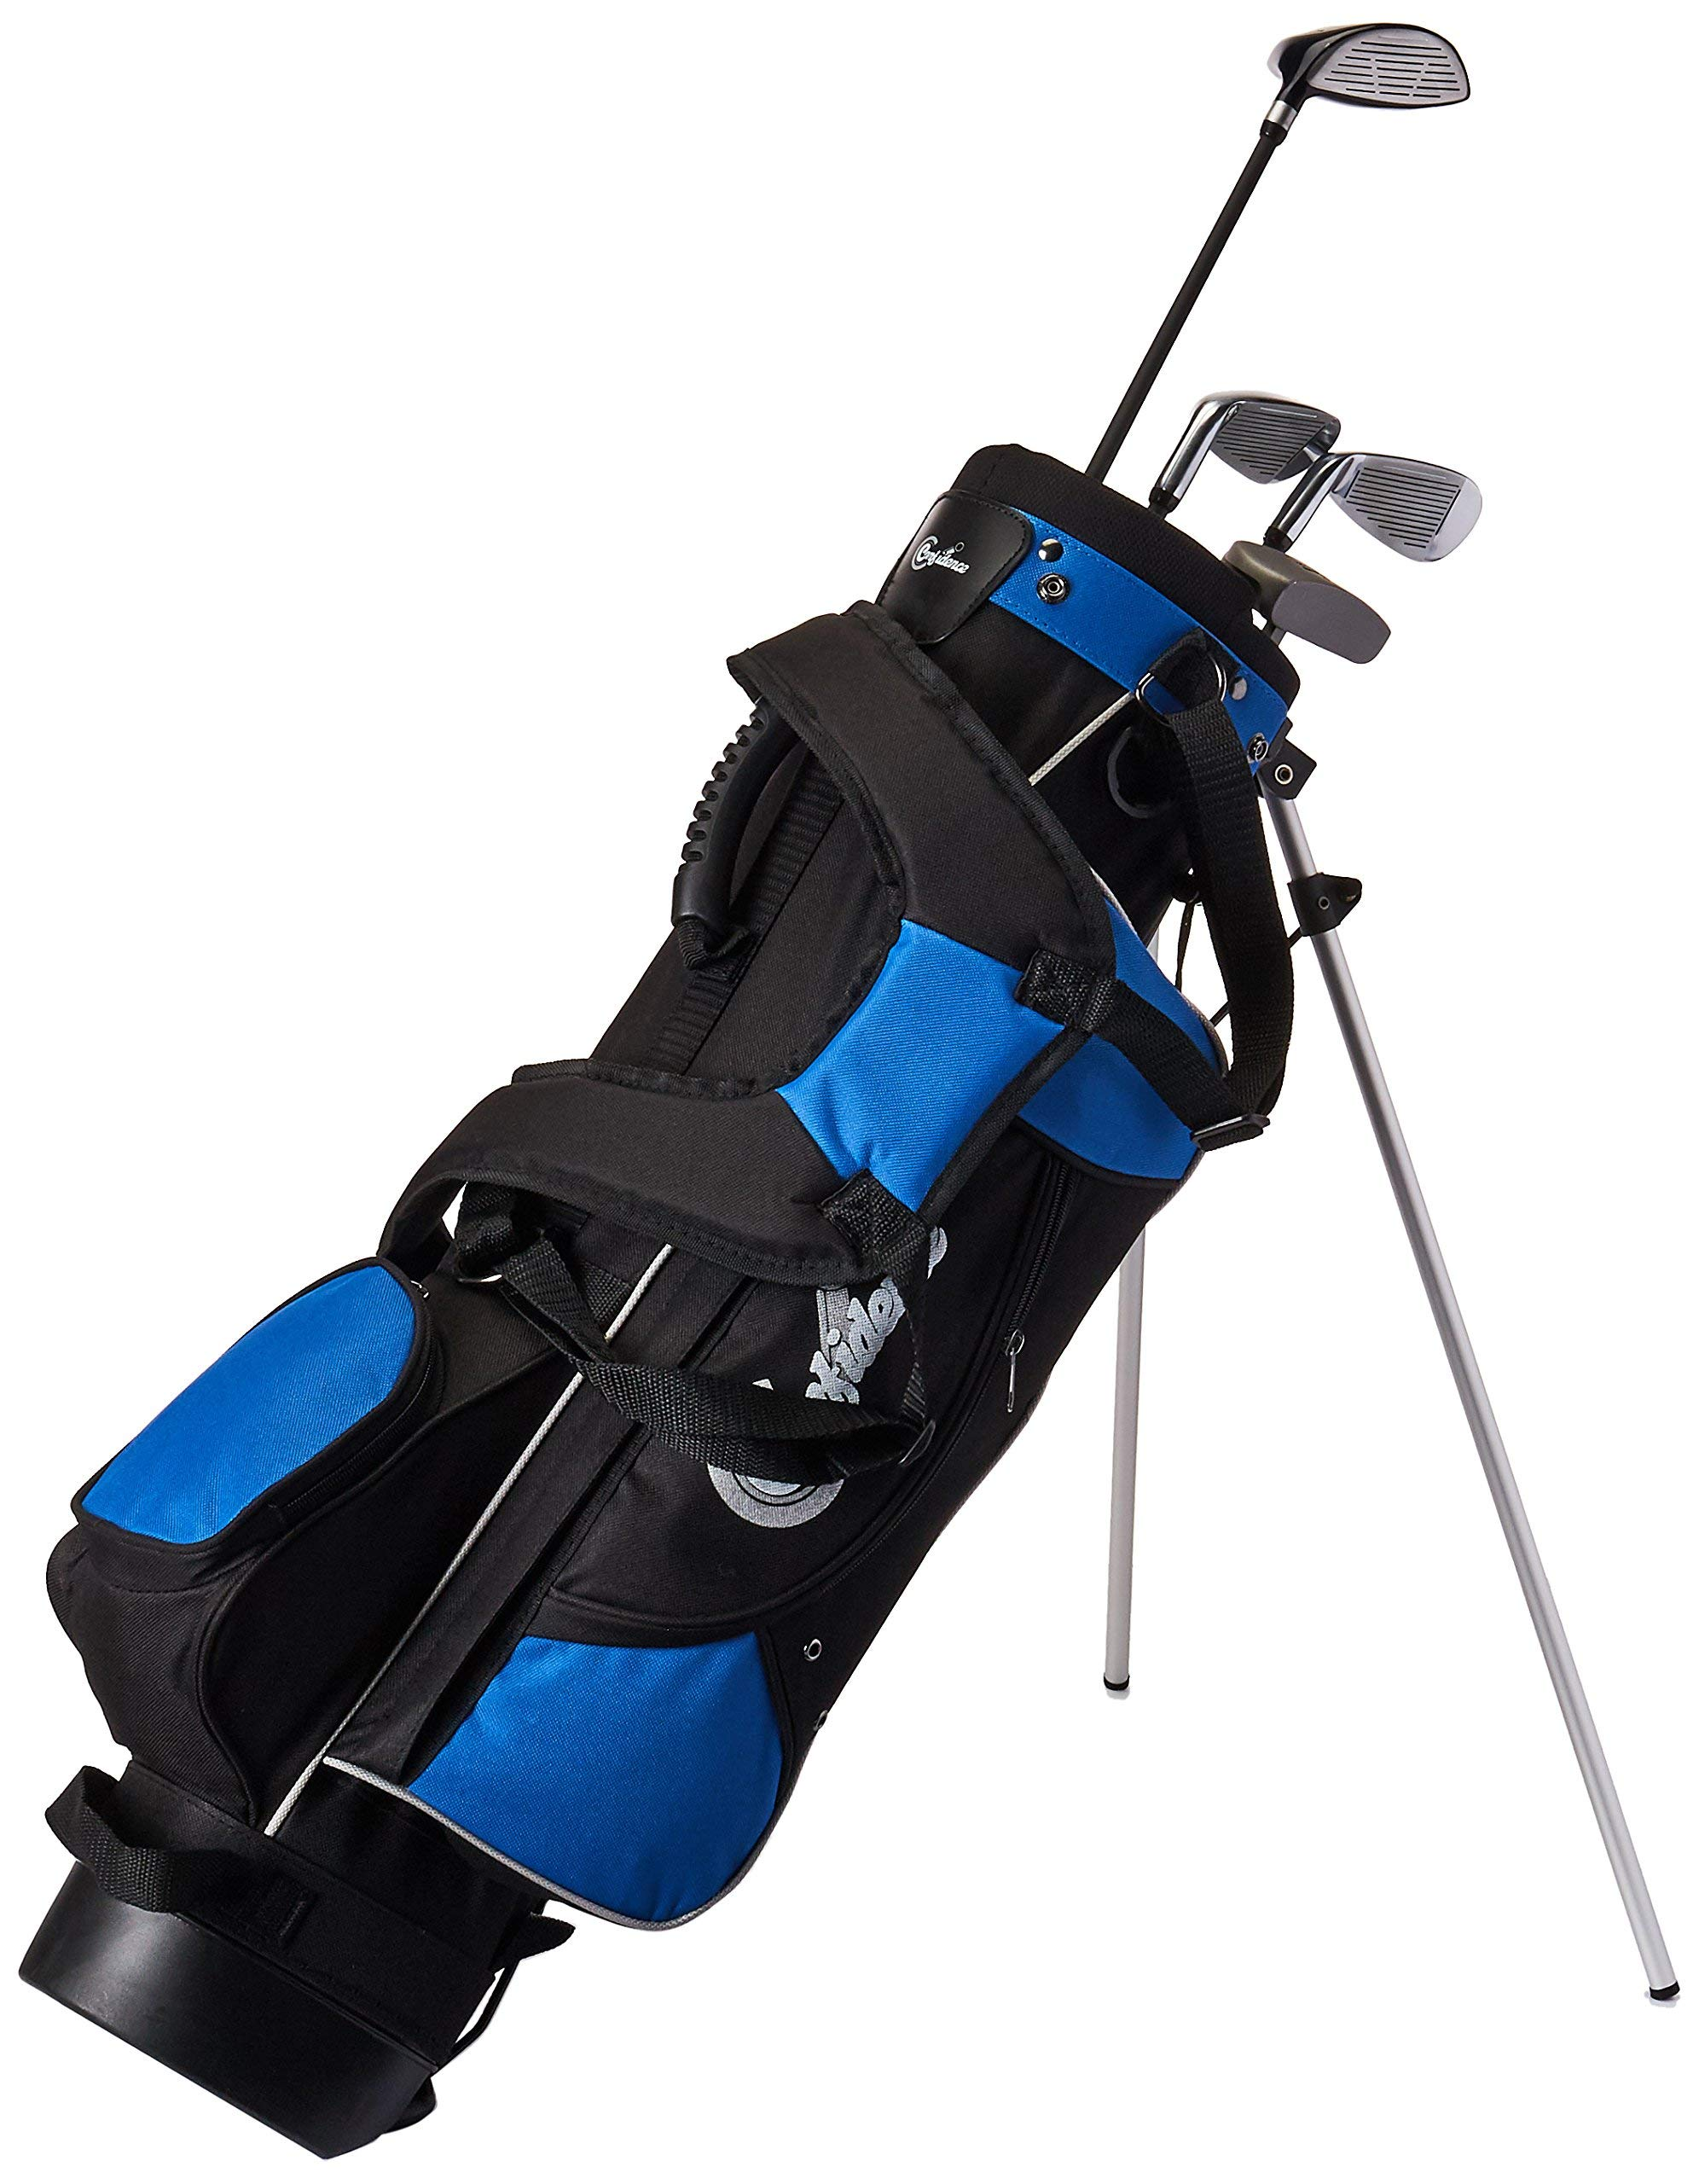 Confidence Junior Golf Club Set with Stand Bag (Right Hand, Ages 4-7) (Renewed) by Confidence (Image #1)